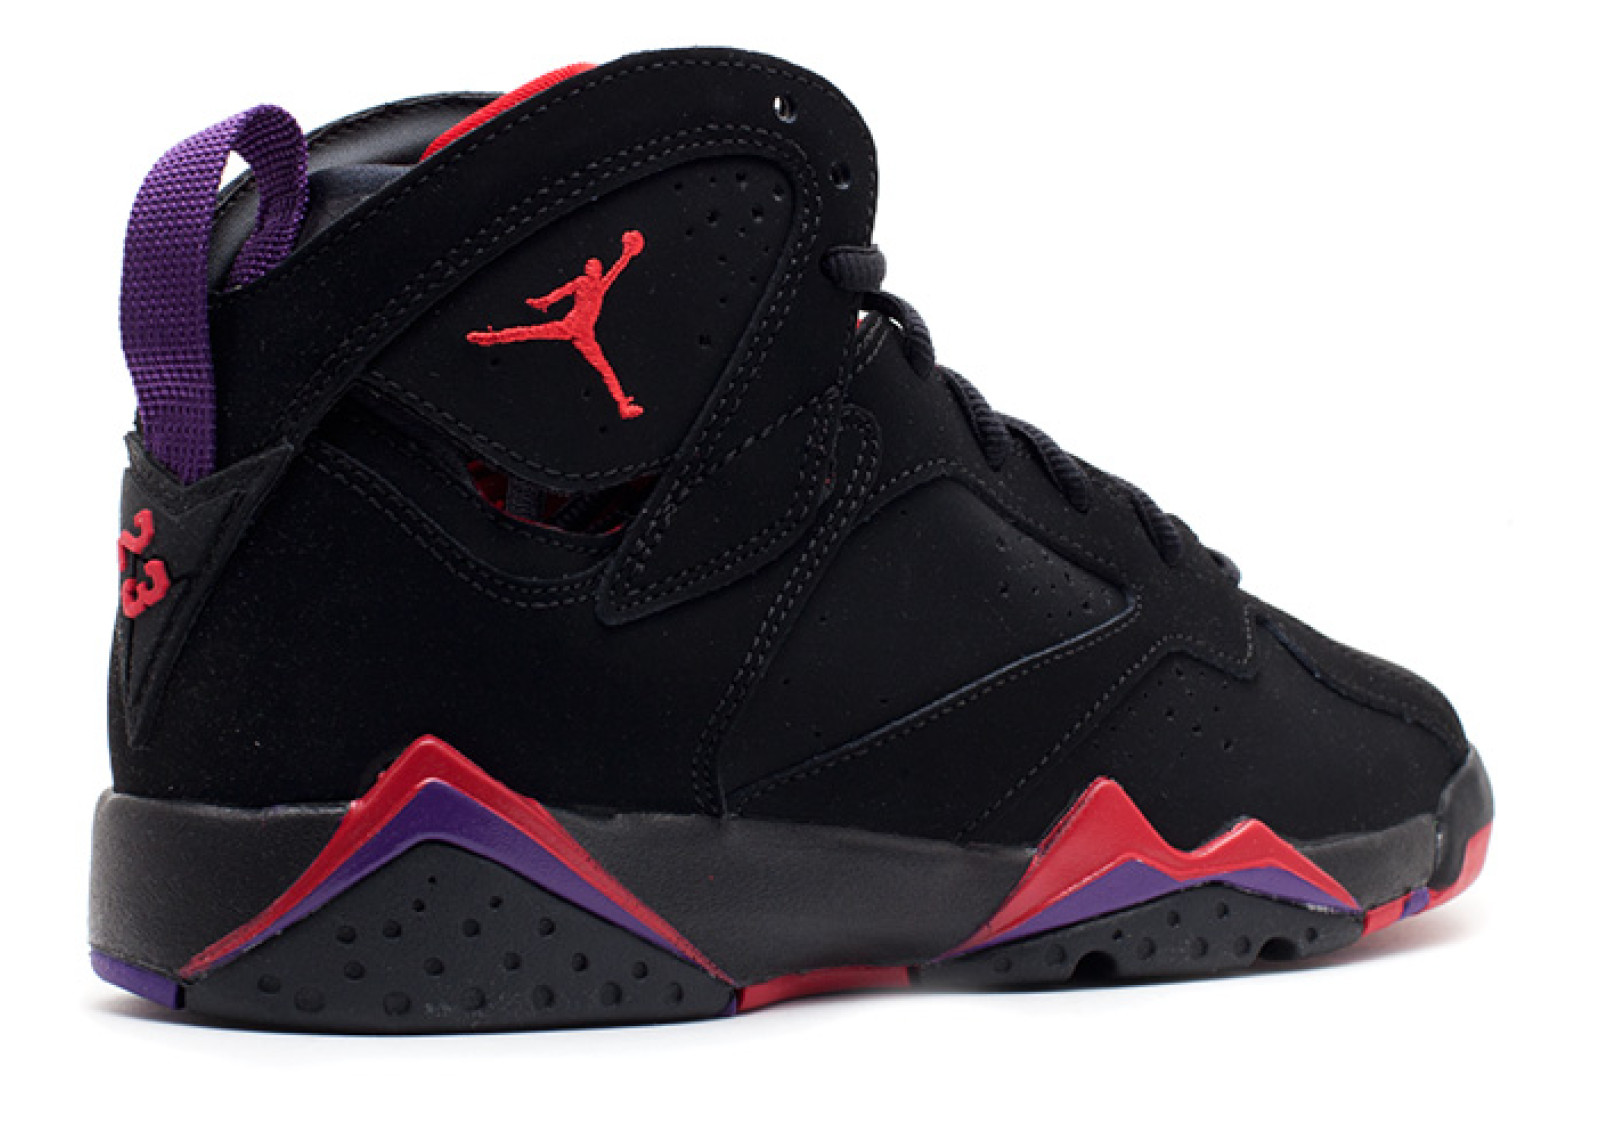 ... cheapest air jordan 7 retro gs raptor 304774 018 walmart 1cfe3 b29e3 35323b2a6